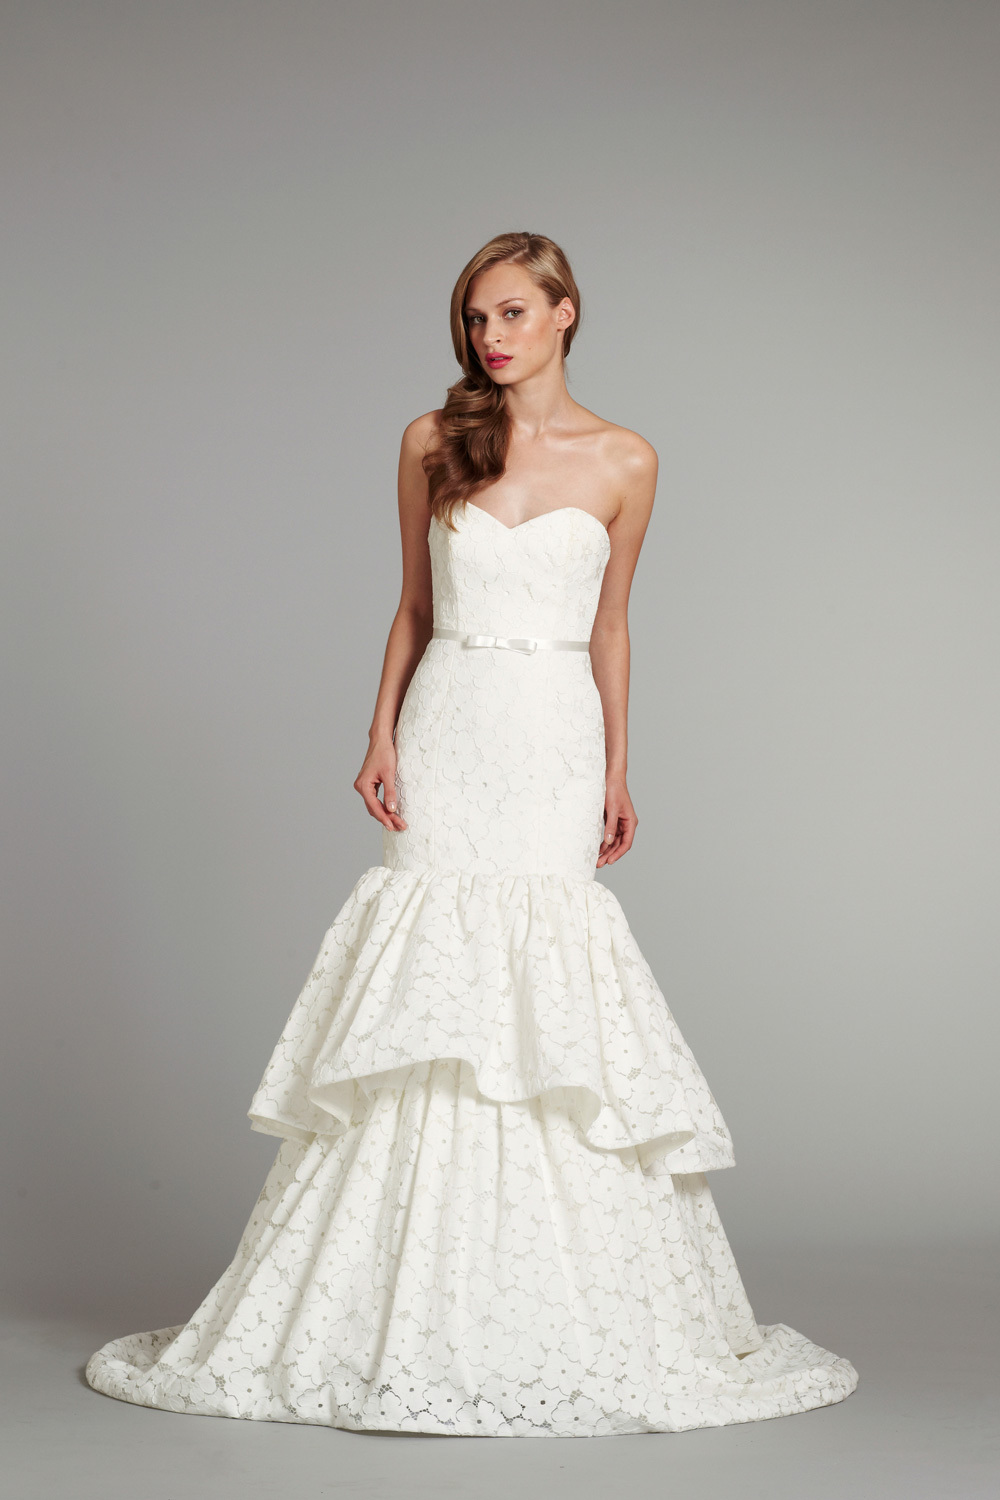 2012-wedding-dresses-bridal-gown-blush-collection-for-jlm-couture-poppy.full